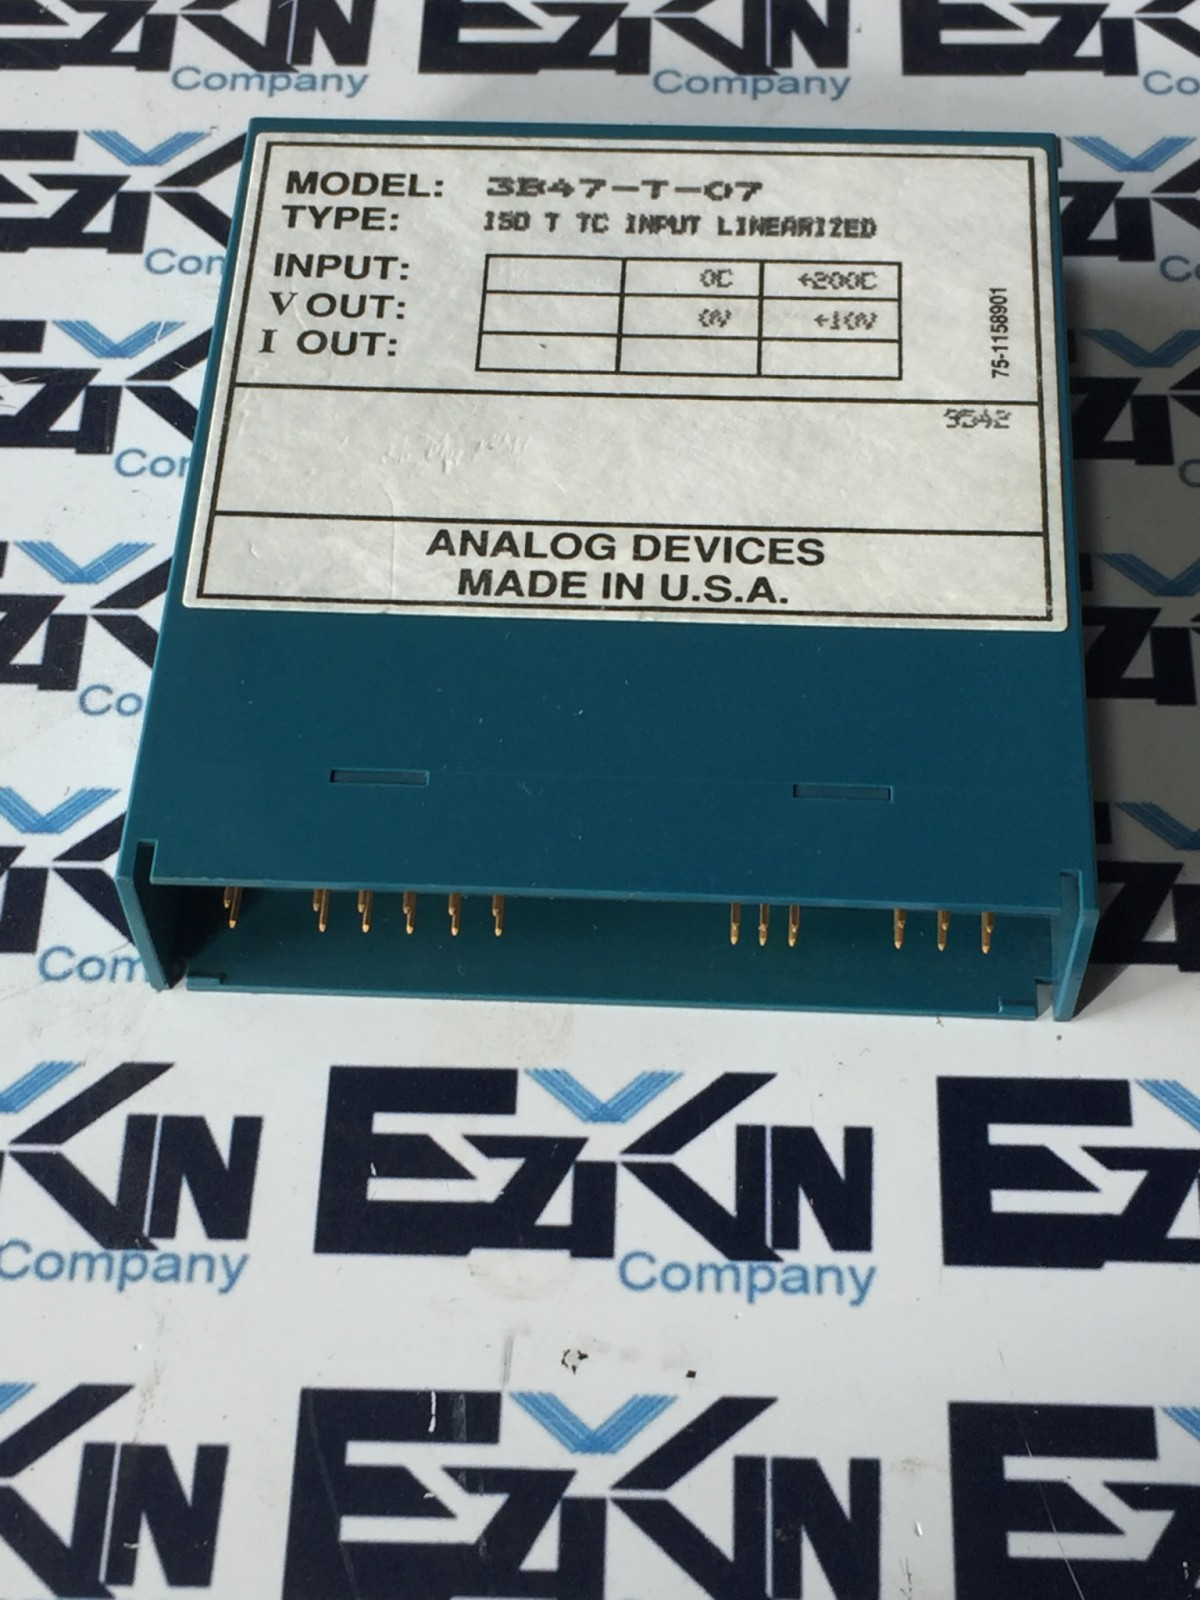 ANALOG DEVICES 3B47-T-07 ISO T TC INPUT LINEARIZED